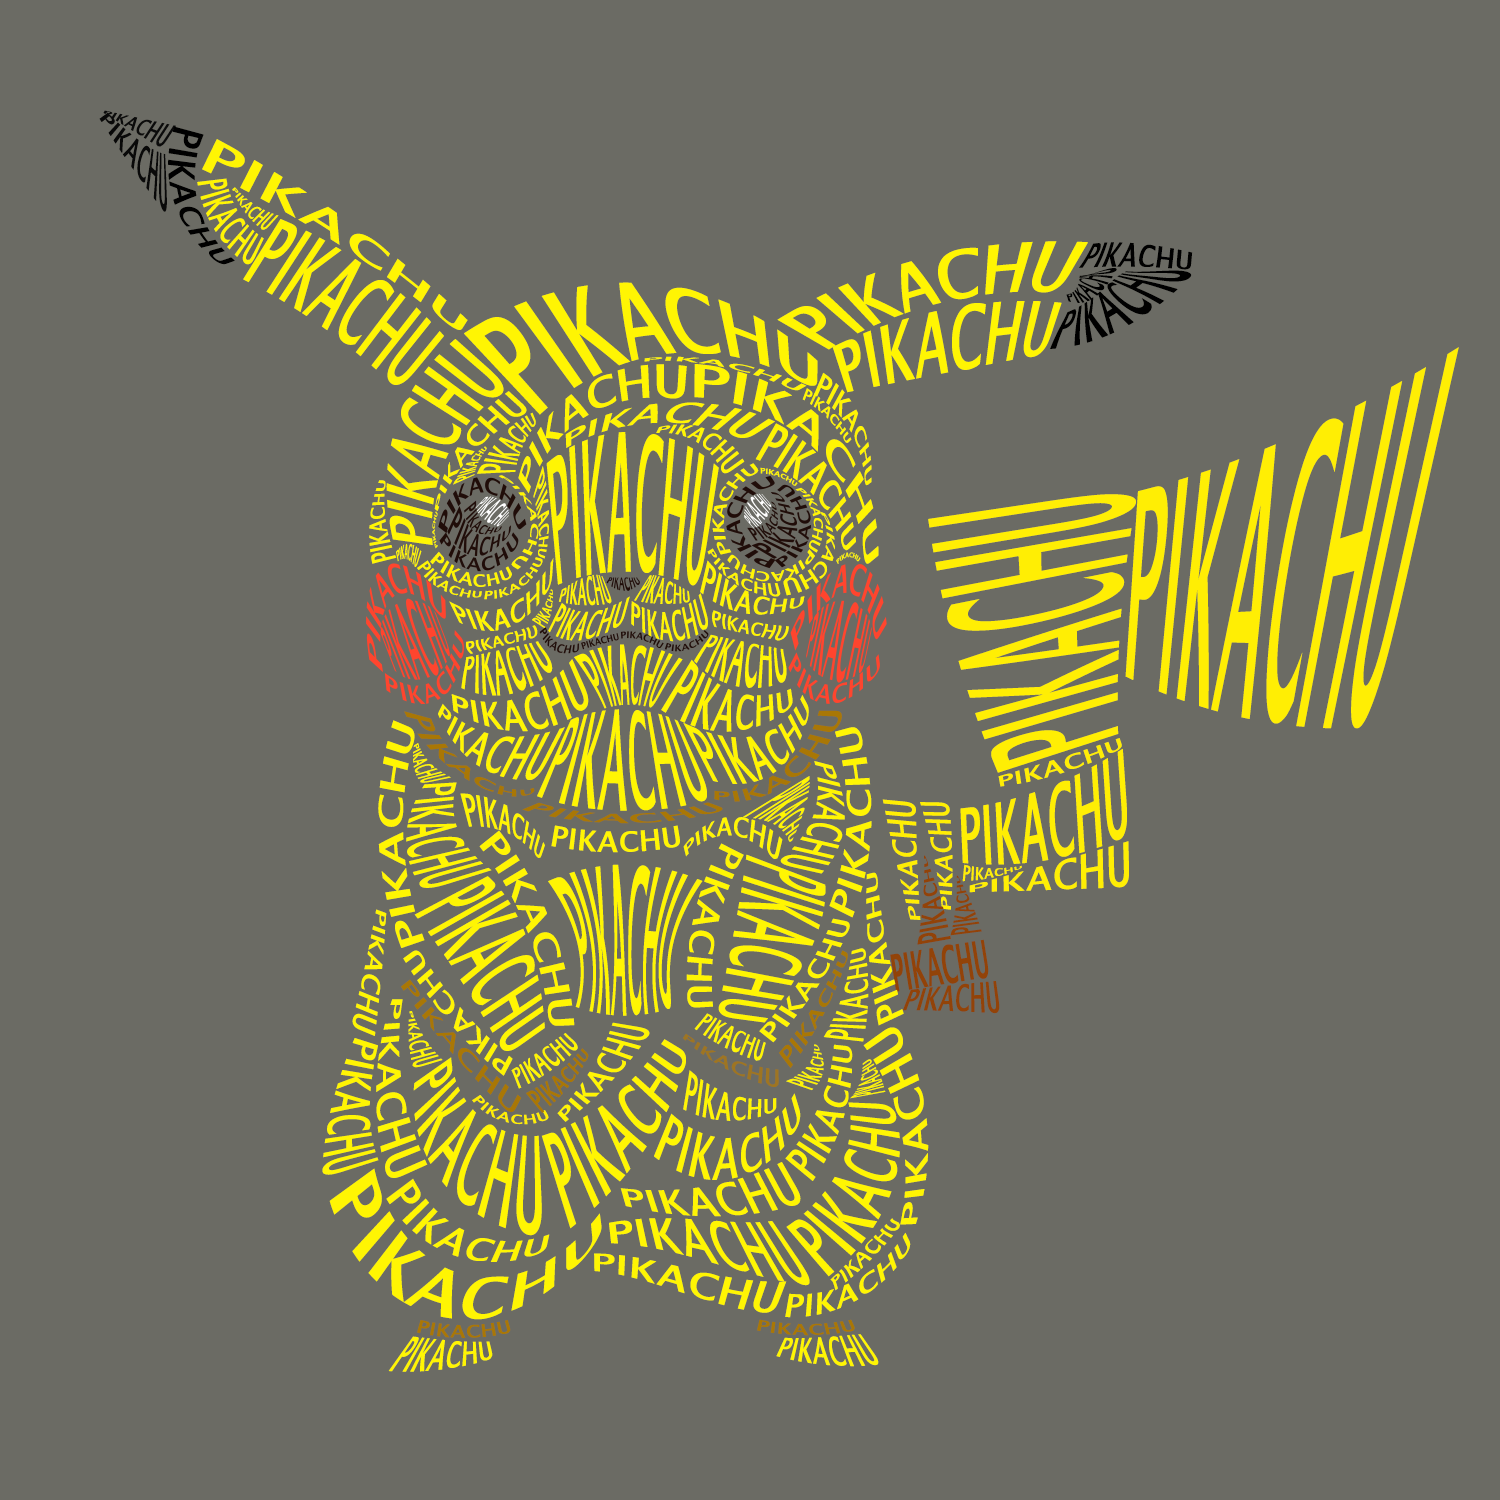 I Was Inspired By The Artist The Other Day With Their Text Composition Of Clank I Ve Been Playing A Lot Of Pokemon Lately And So Here Is My Attempt At Pikachu